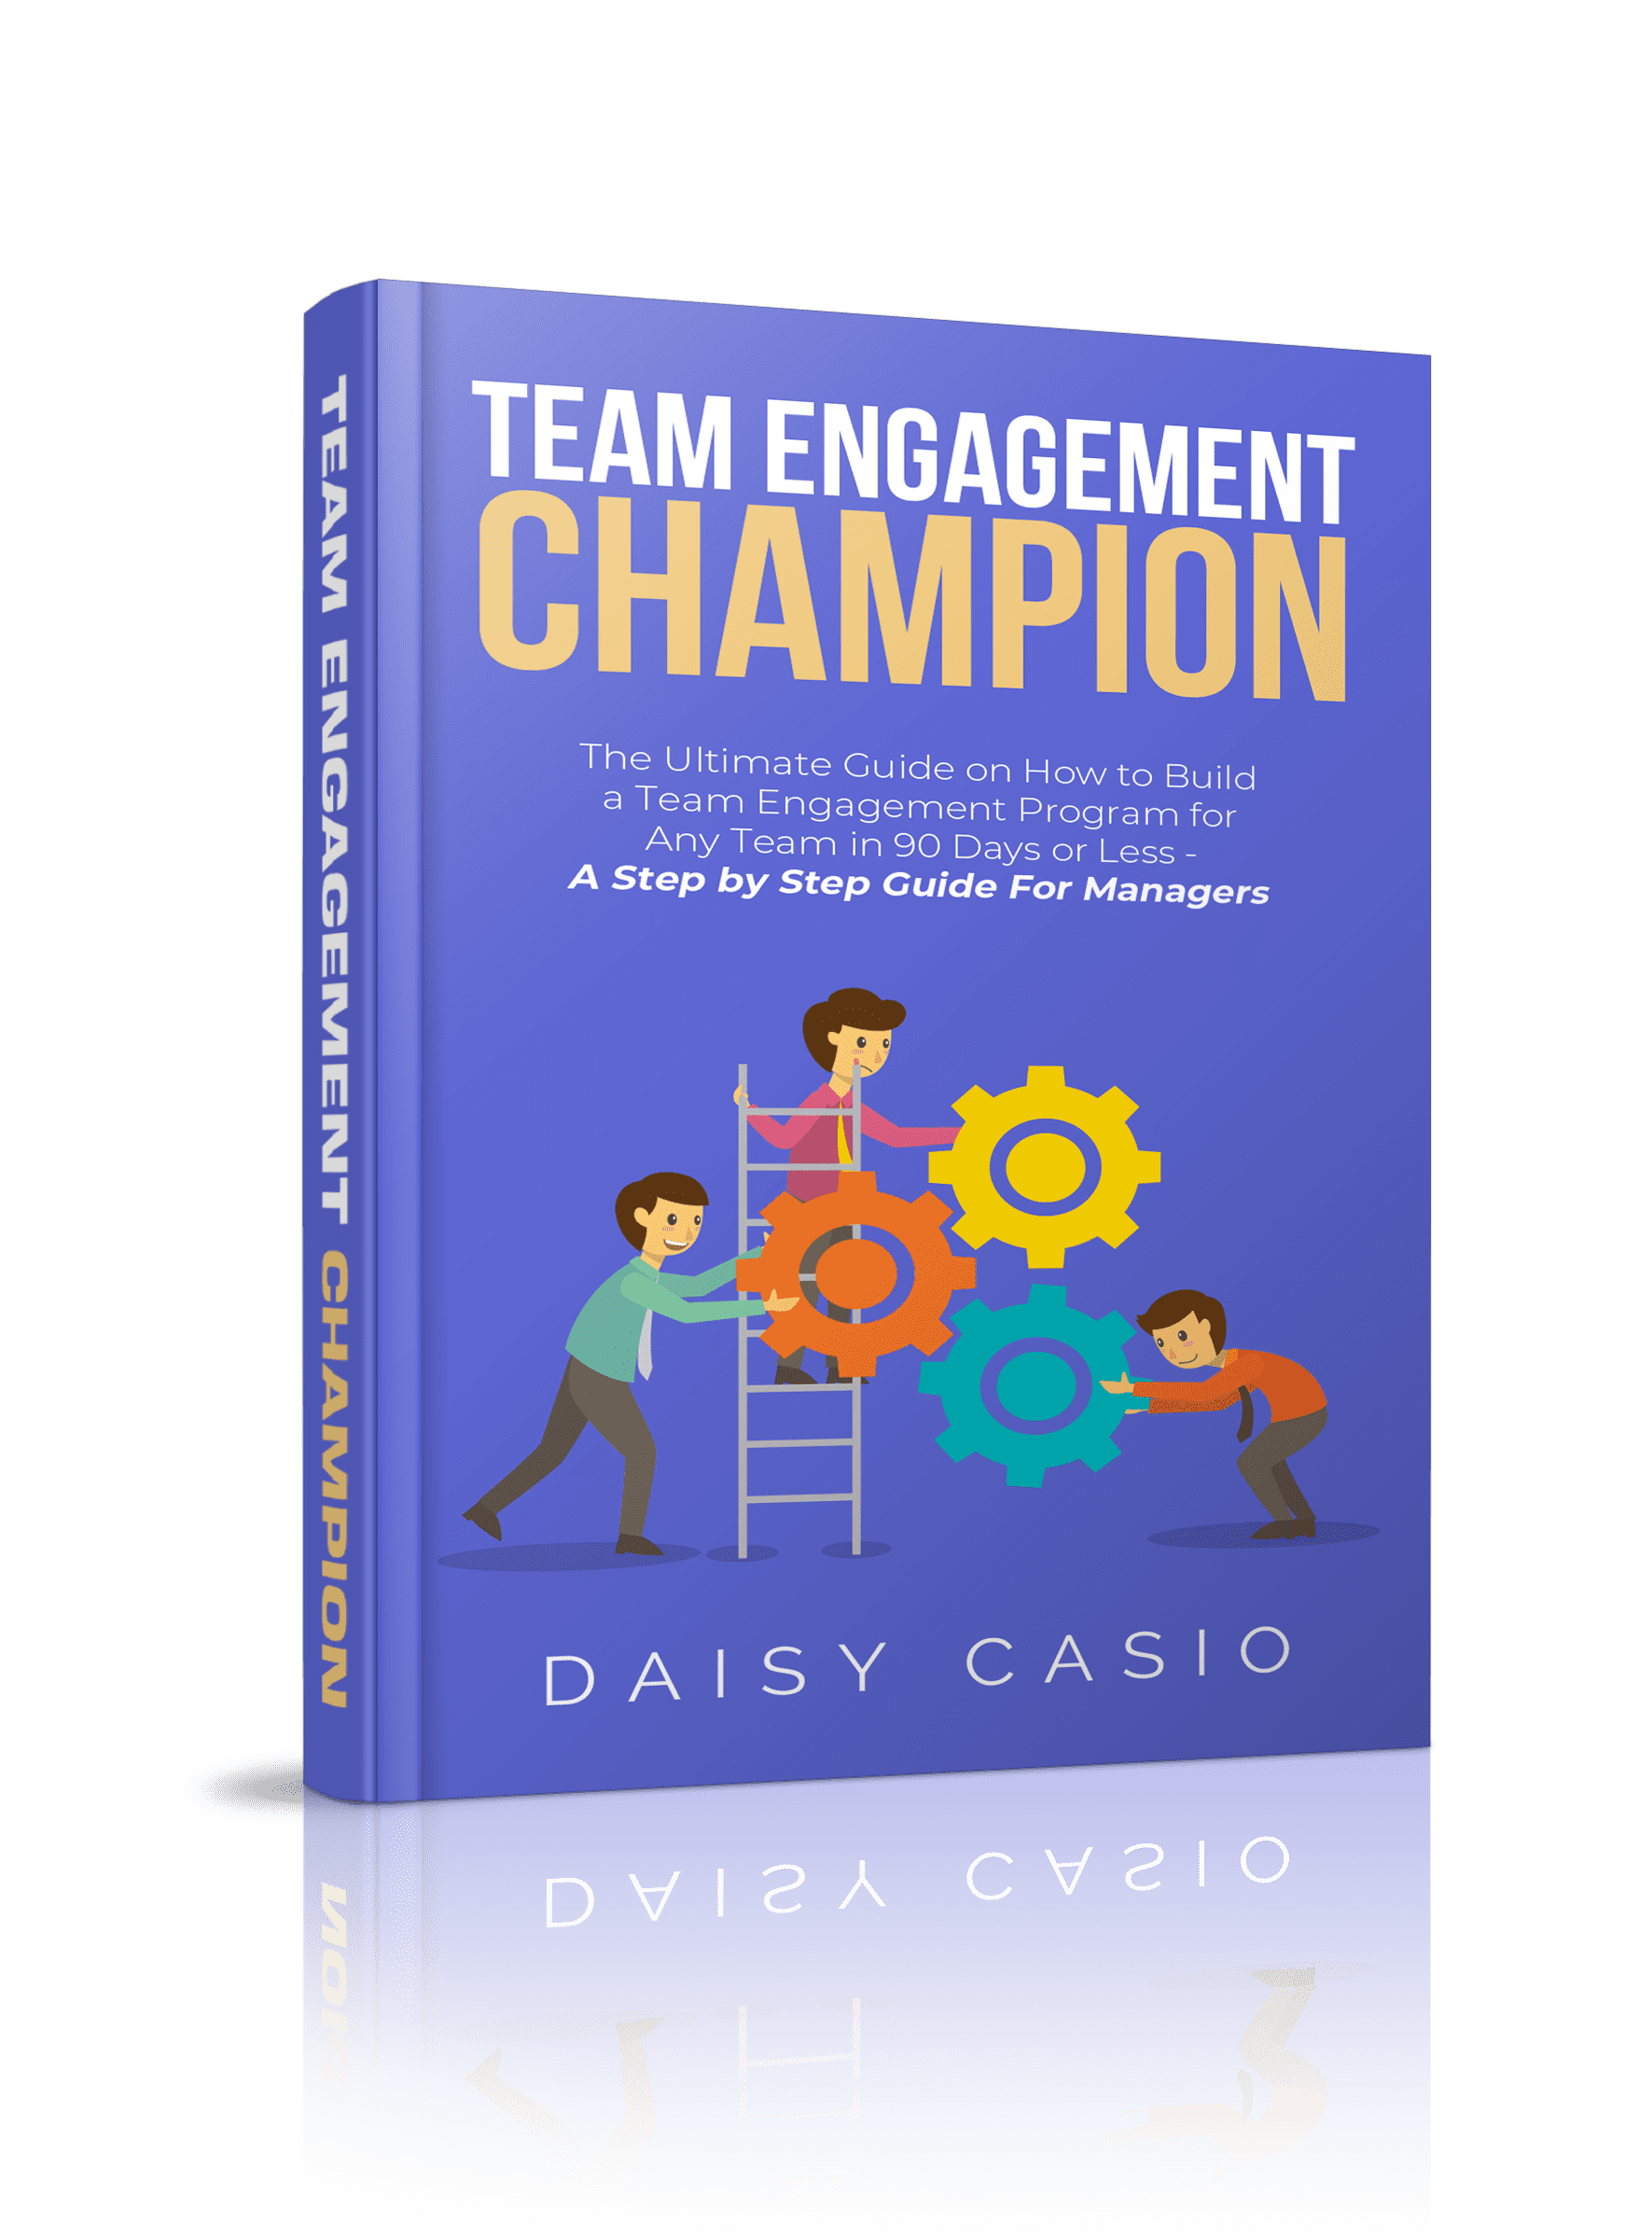 Team Engagement Champion